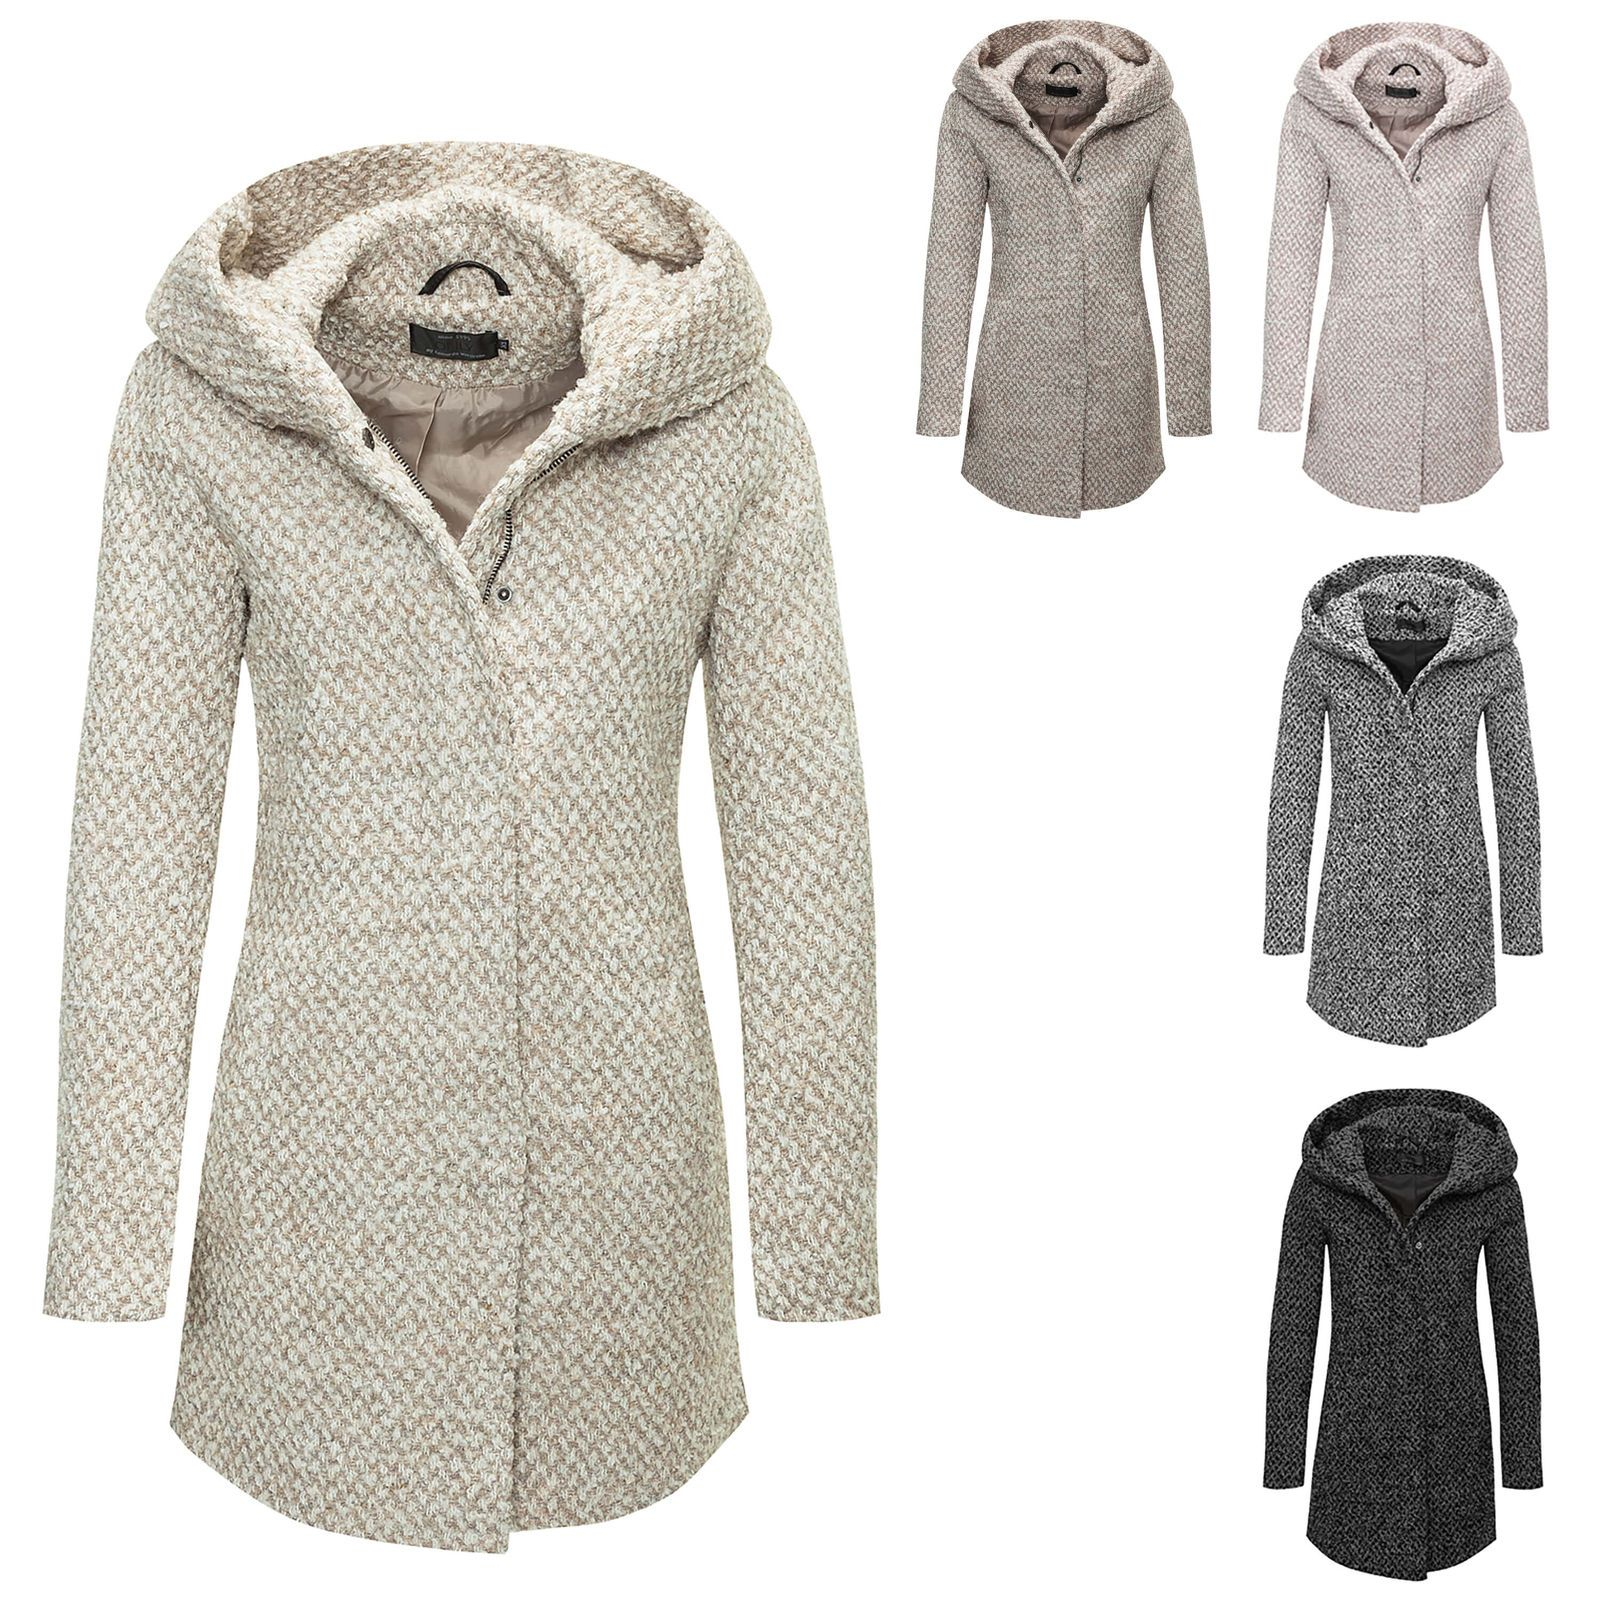 985f15f55af3ac Only Damen Wollmantel Kurzmantel Übergangs & Winter Mantel Winterjacke  Parka NEU in Kleidung & Accessoires,